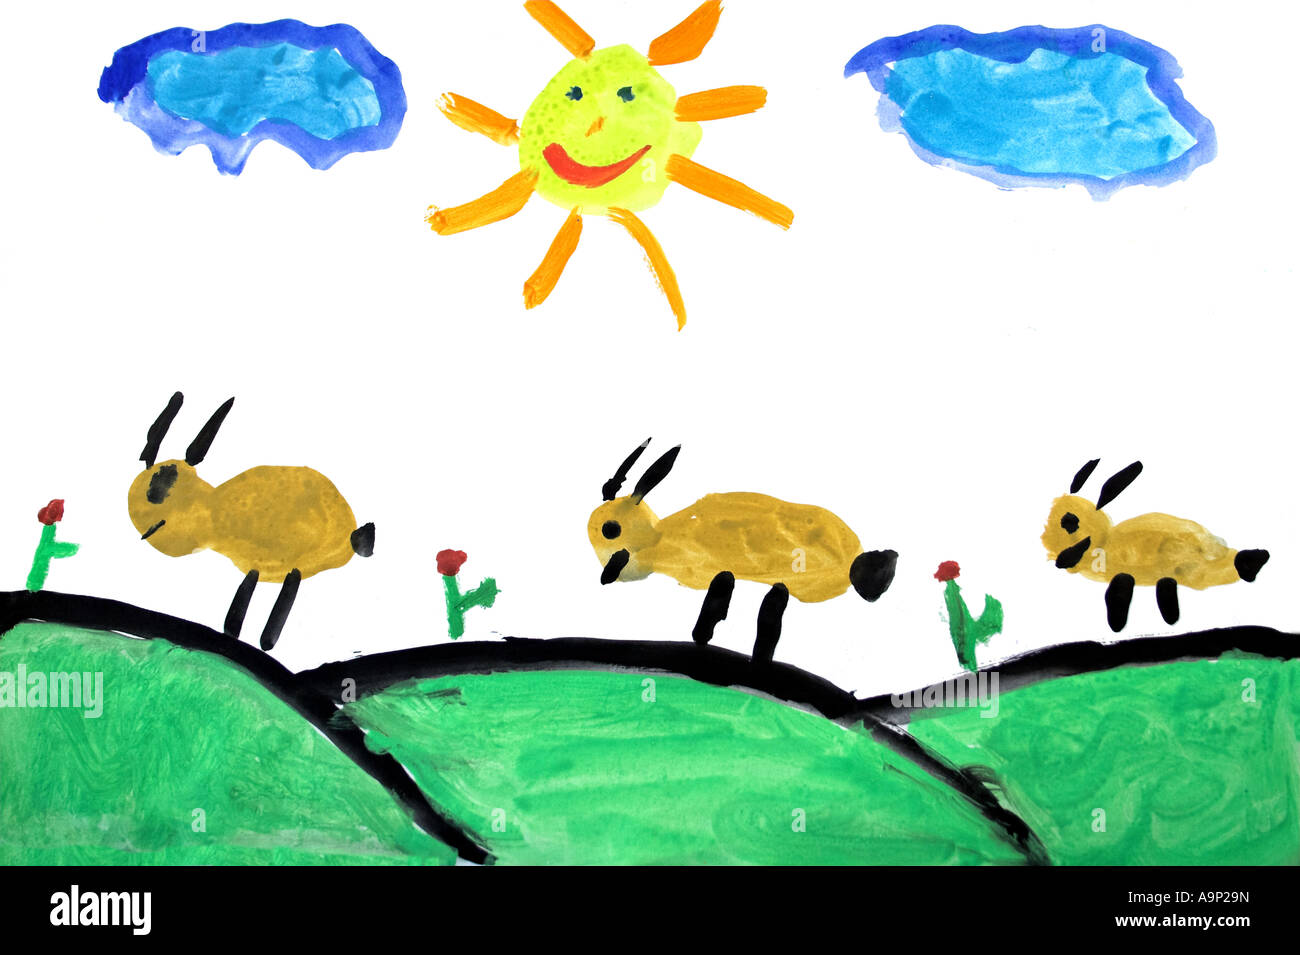 Real child drawing (7 year old) portraying a rural scene - Stock Image